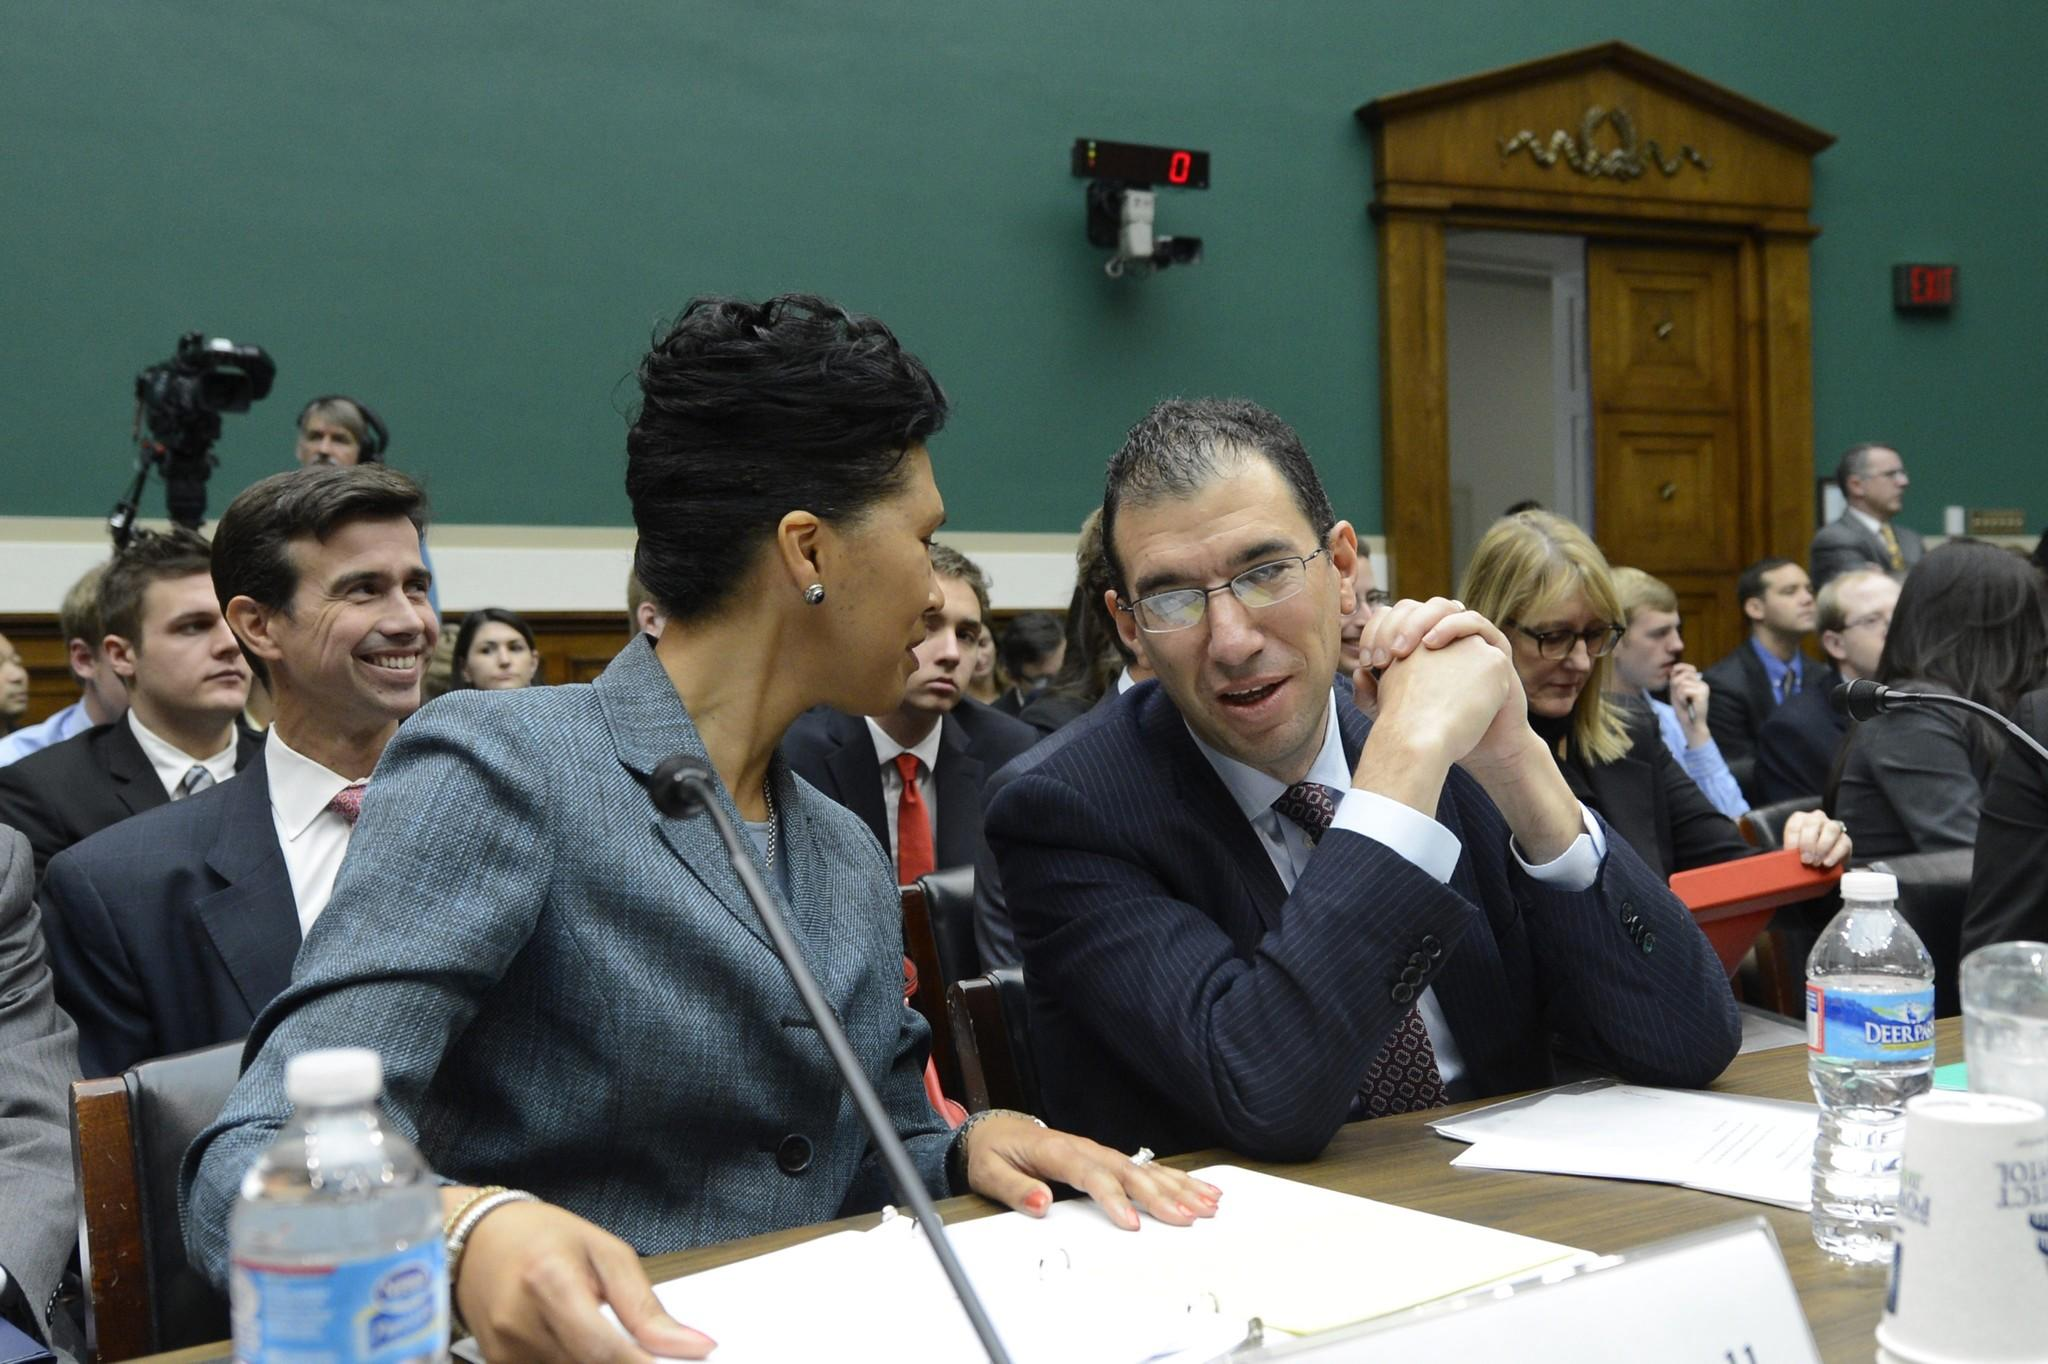 Senior Vice President of CGI Federal Cheryl Campbell (left) and group executive Vice President for Optum/QSSI Andrew Slavitt speak with one another before appearing before a US House Energy and Commerce Committee hearing.